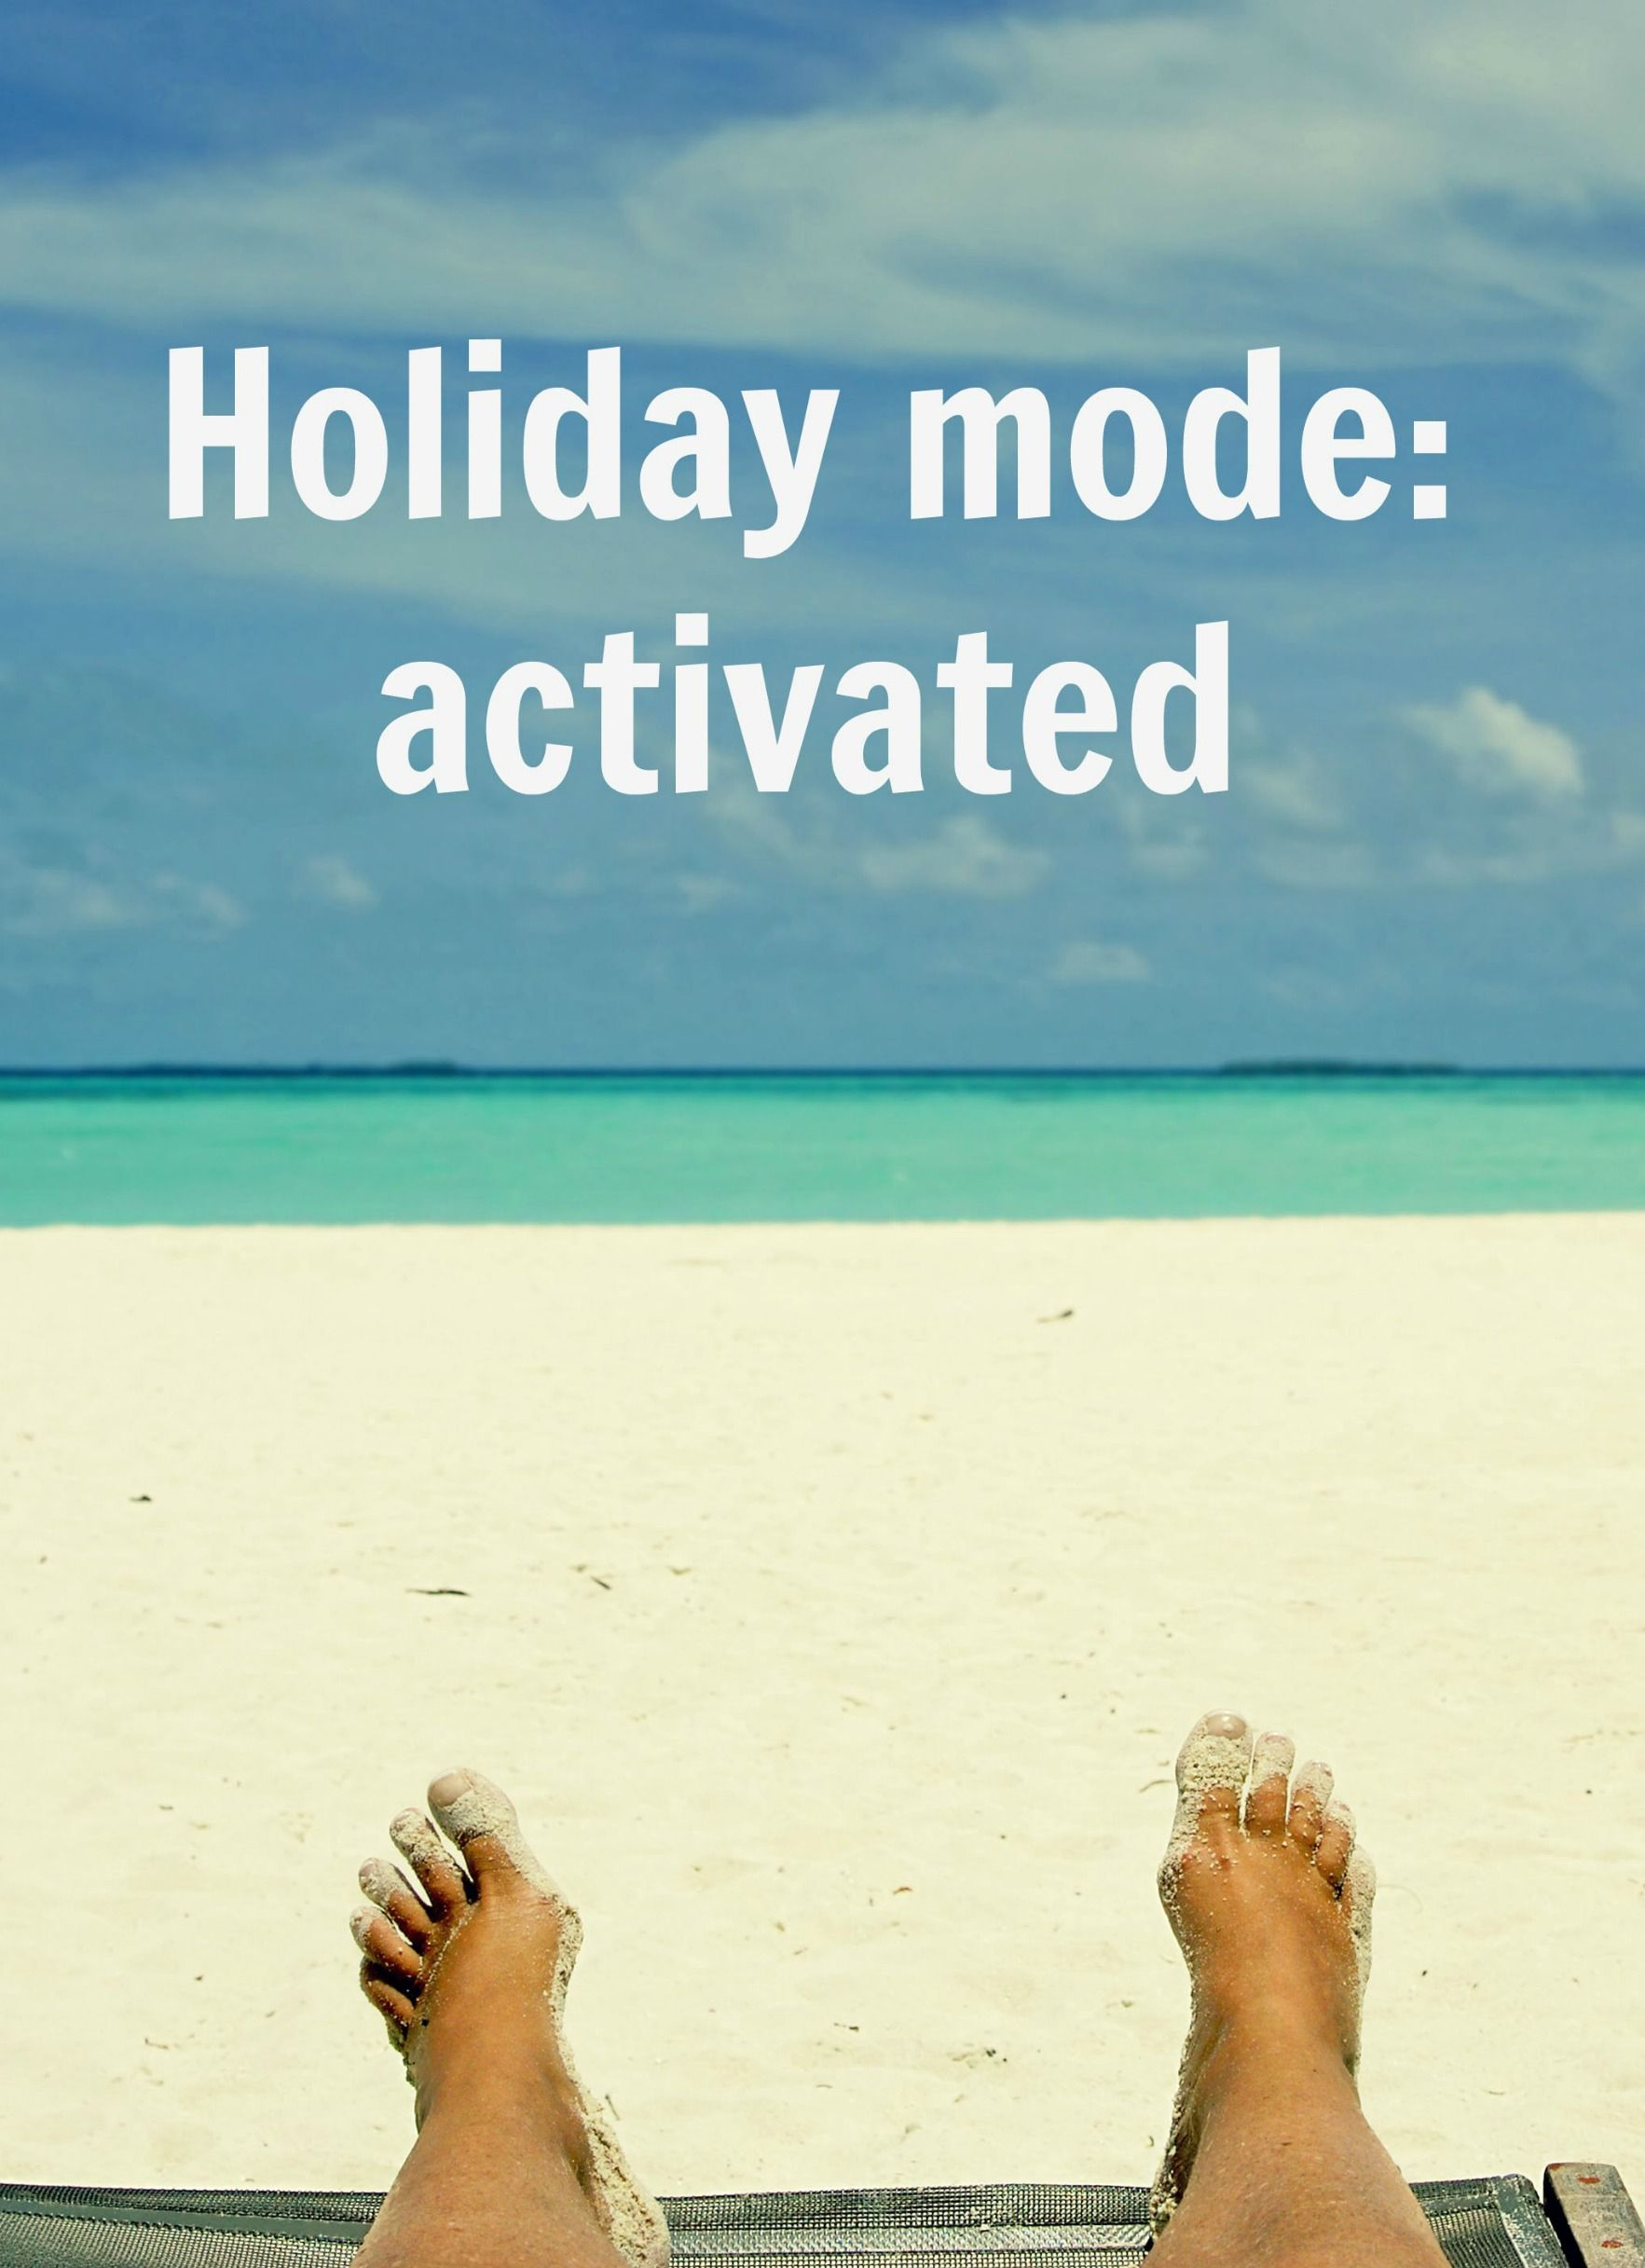 Holidays: a selection of quotes